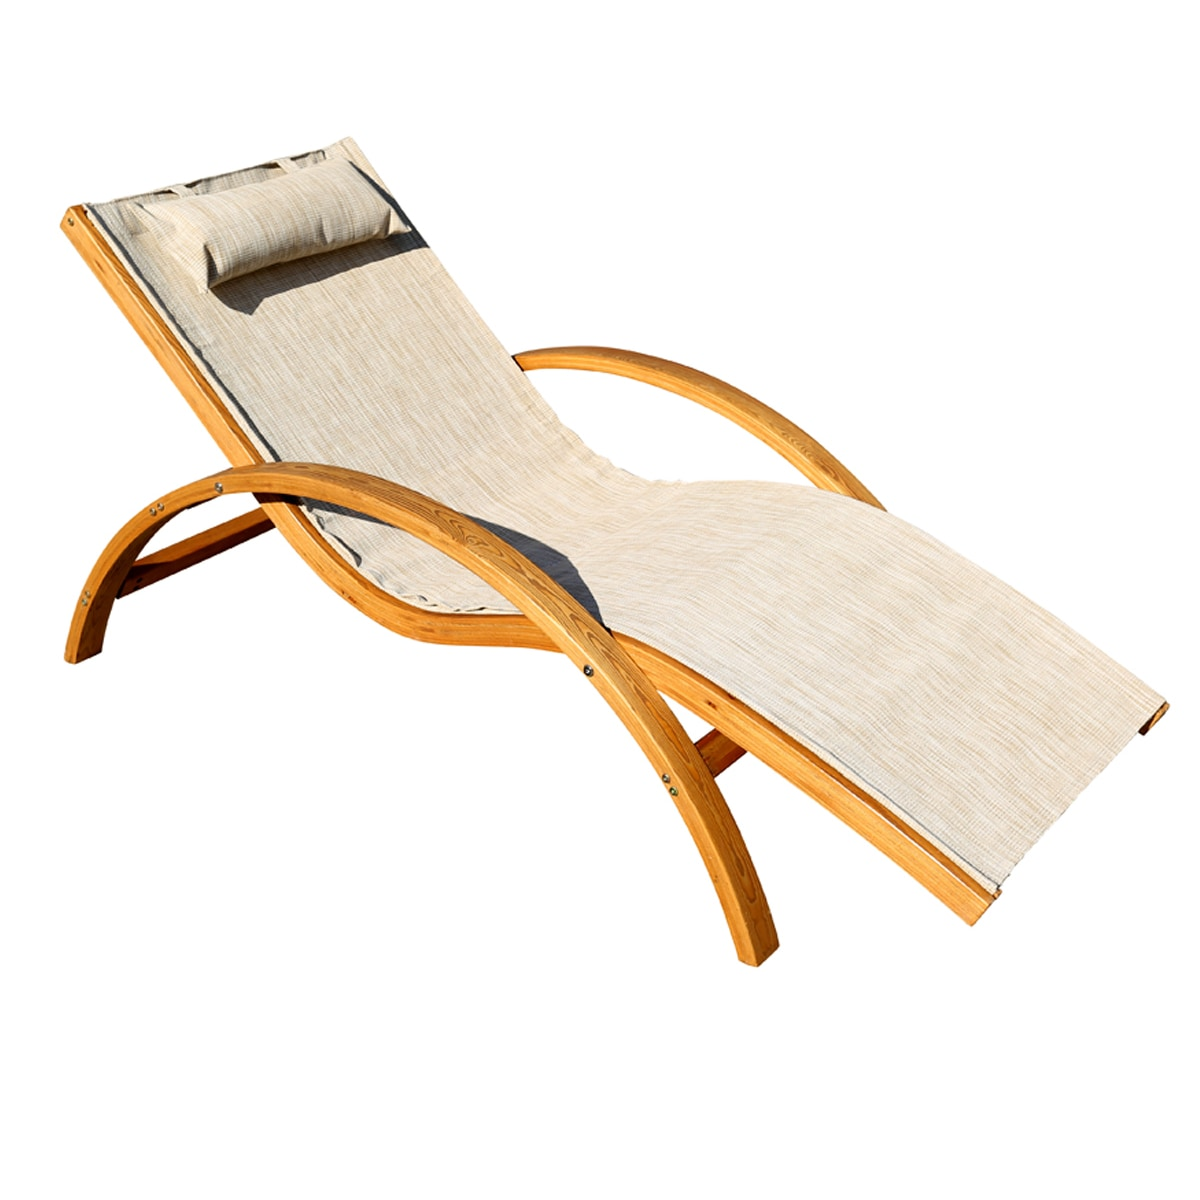 Leisure Sling Outdoor Lounge Chair (Sling Lounge Chair), ...